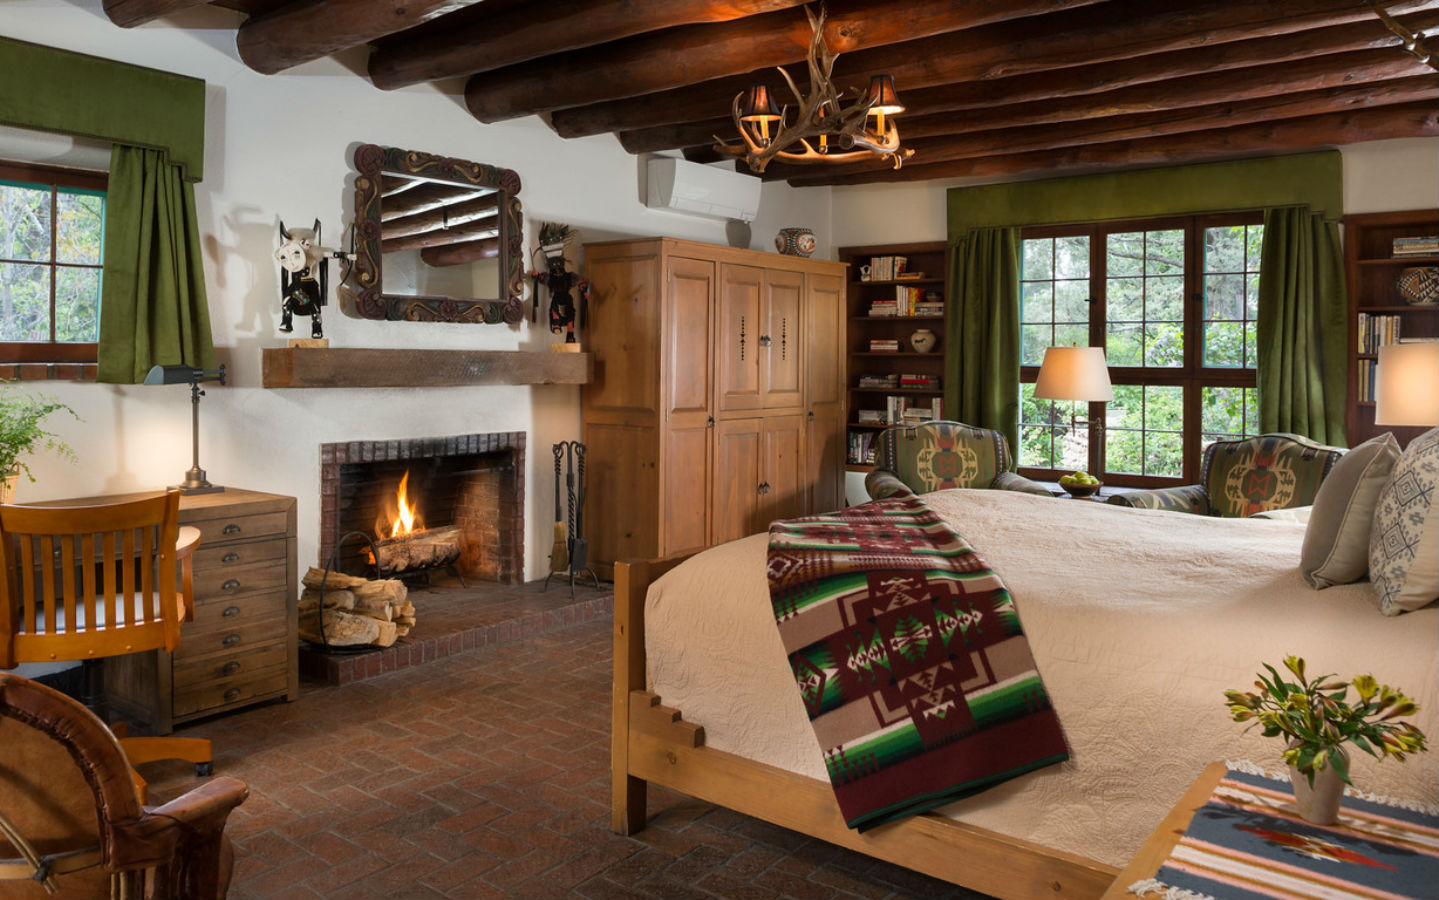 Find Your Favorite Room at the Inn of the Turquoise Bear